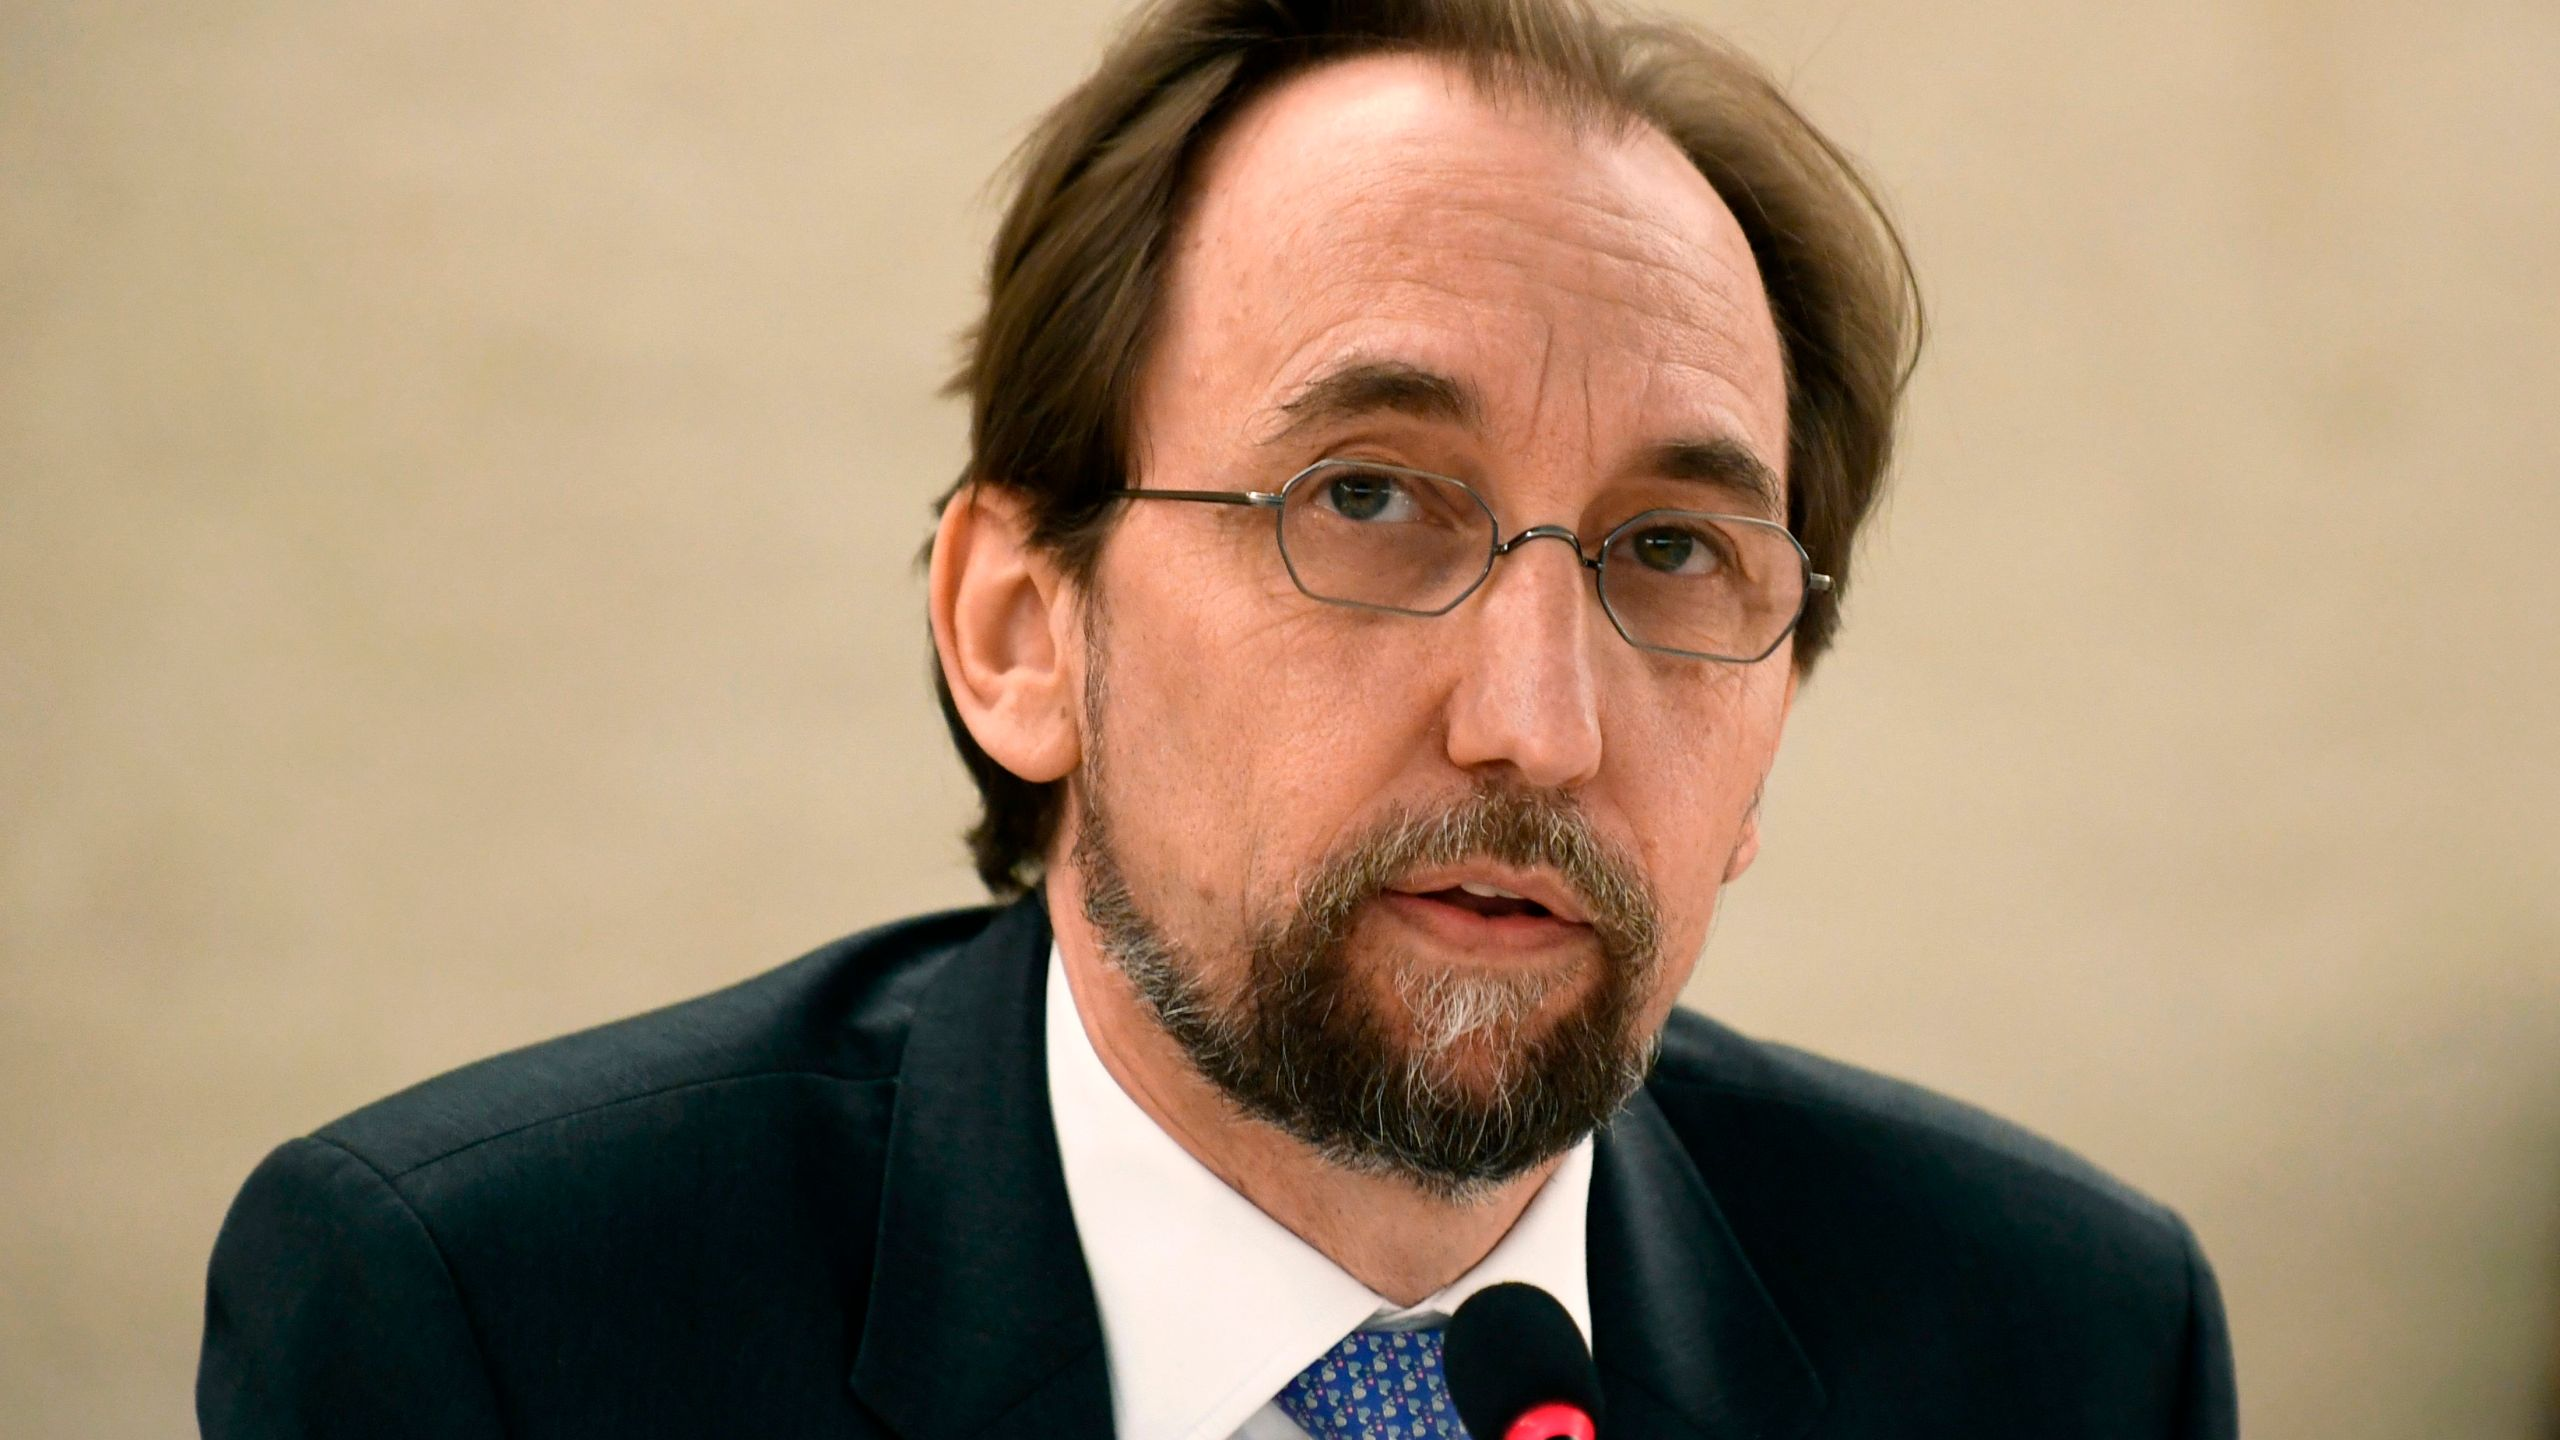 United Nations High Commissioner for Human Rights Zeid Ra'ad Al Hussein speaks during the opening of the 38th session of the UN Human Rights Council on June 18, 2018 in Geneva. (Credit: ALAIN GROSCLAUDE / AFP/Getty Images)